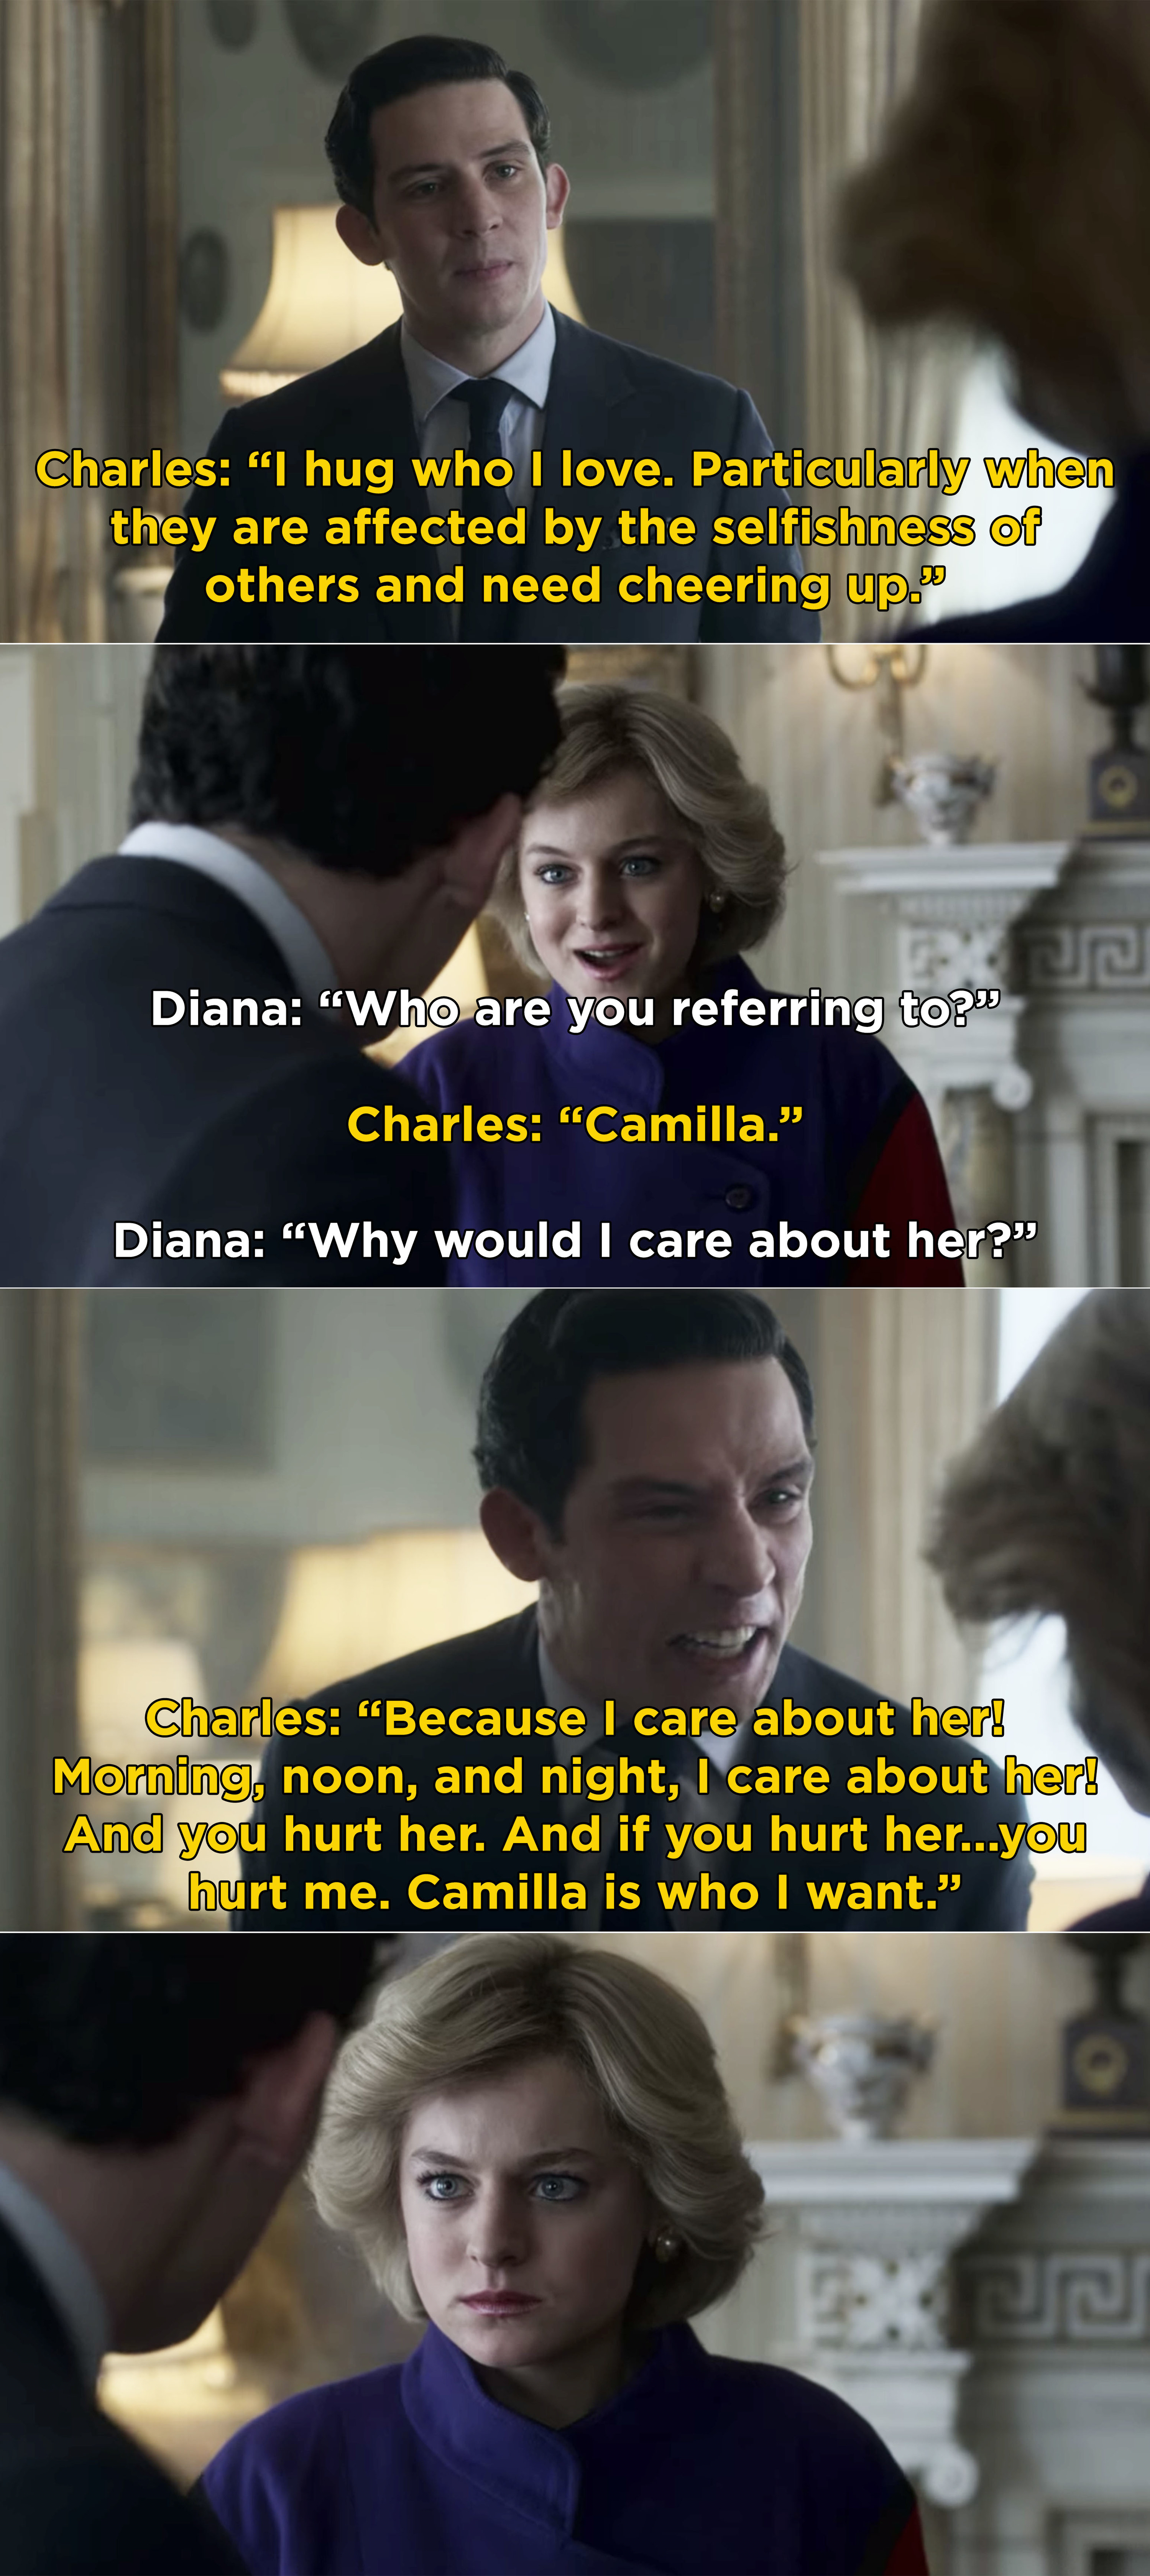 Charles screaming at Diana that he loves Camilla and cares about her more